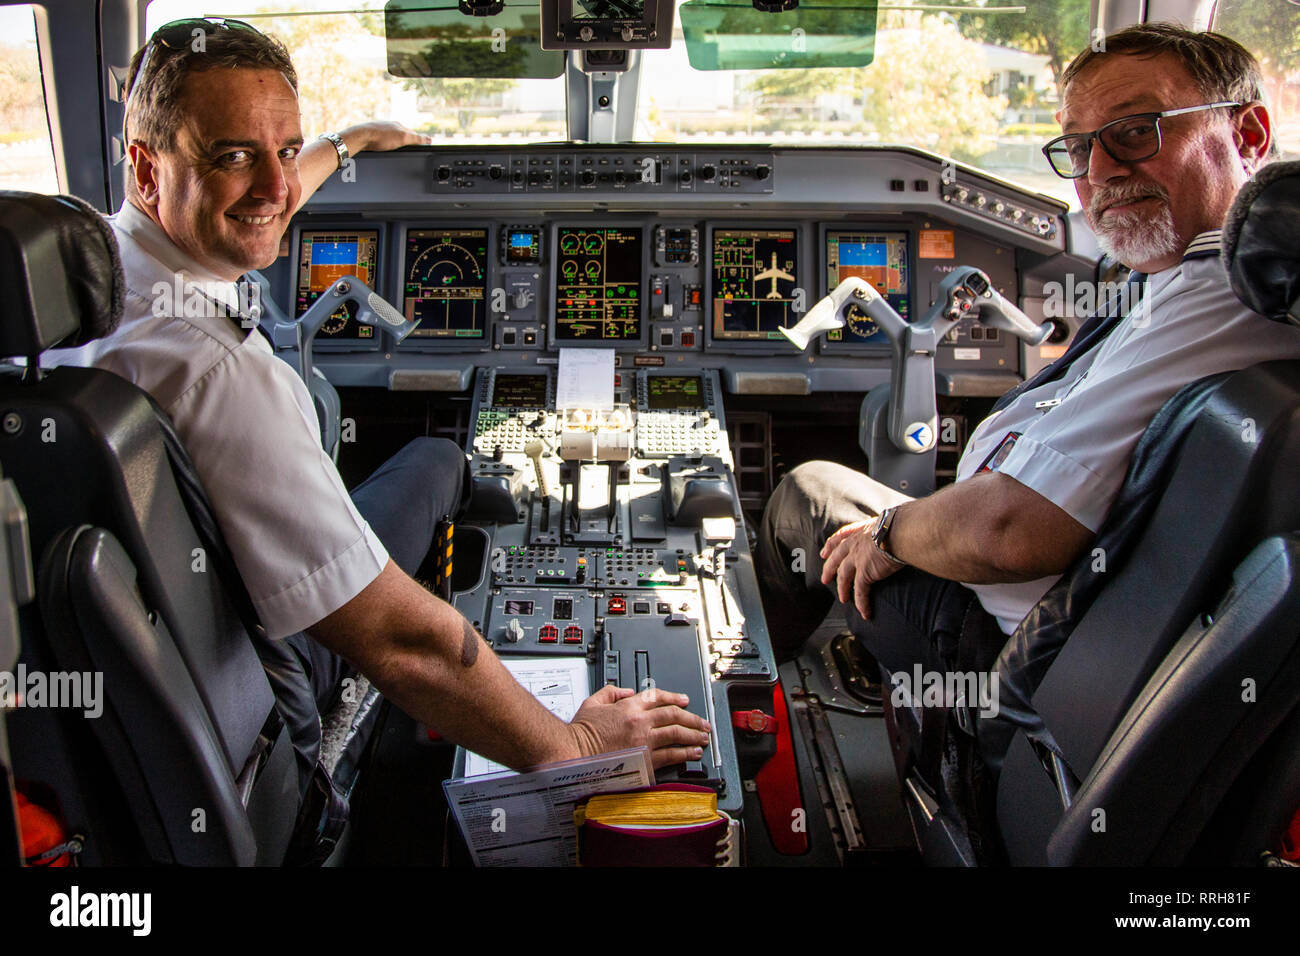 Pilot and Copilot in Cockpit on Ground - Stock Image